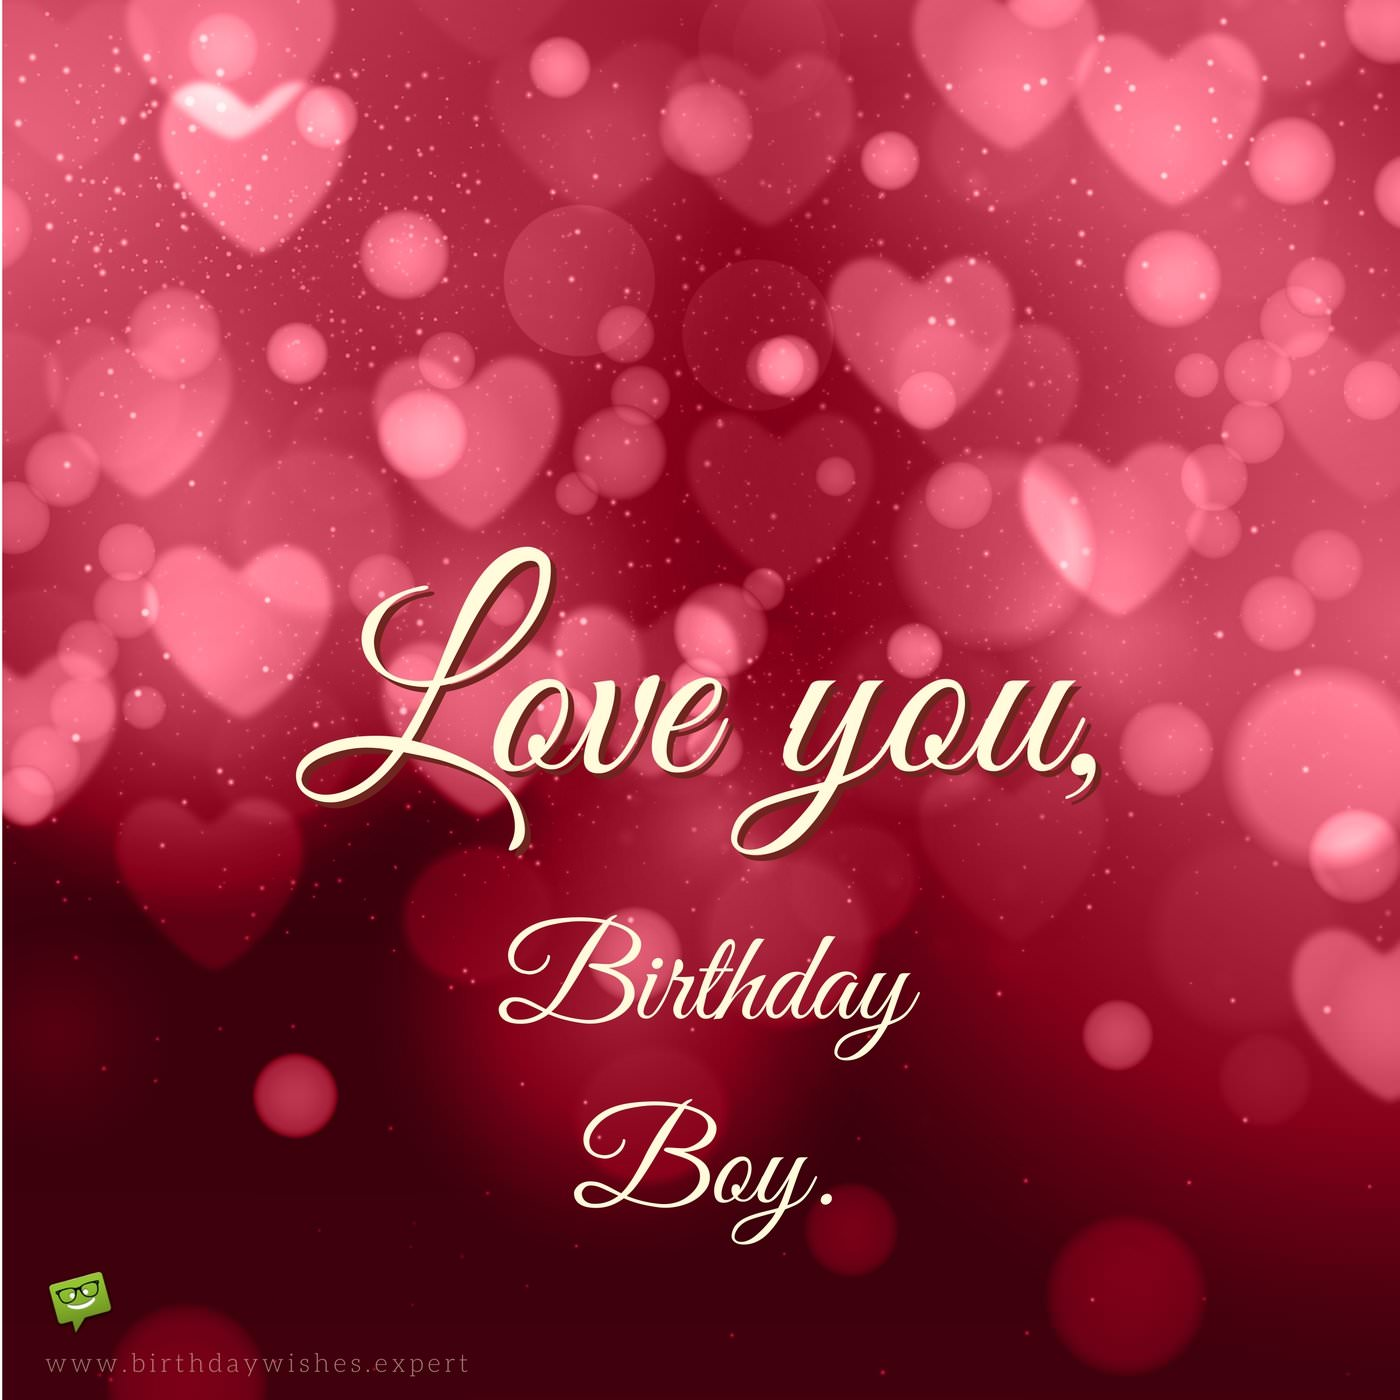 Smart Funny and Sweet Birthday Wishes for your Boyfriend